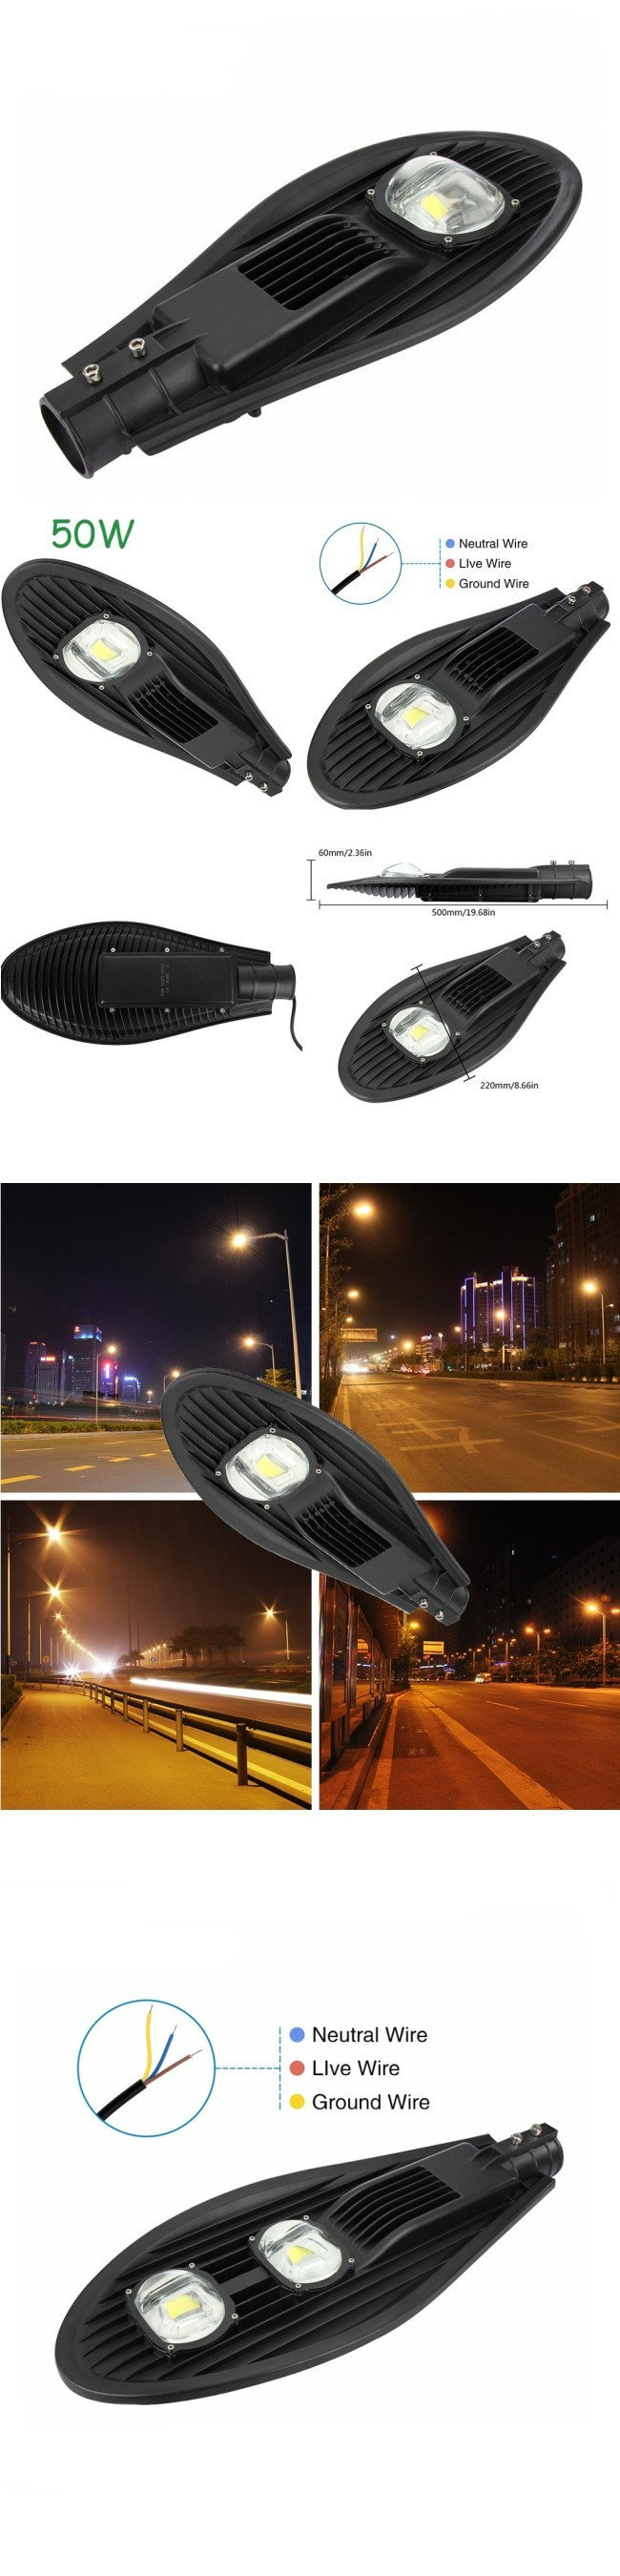 Meanwell Driver Bridgelux Epistar Chip 200W Street LED Light Outdoor Super Bright